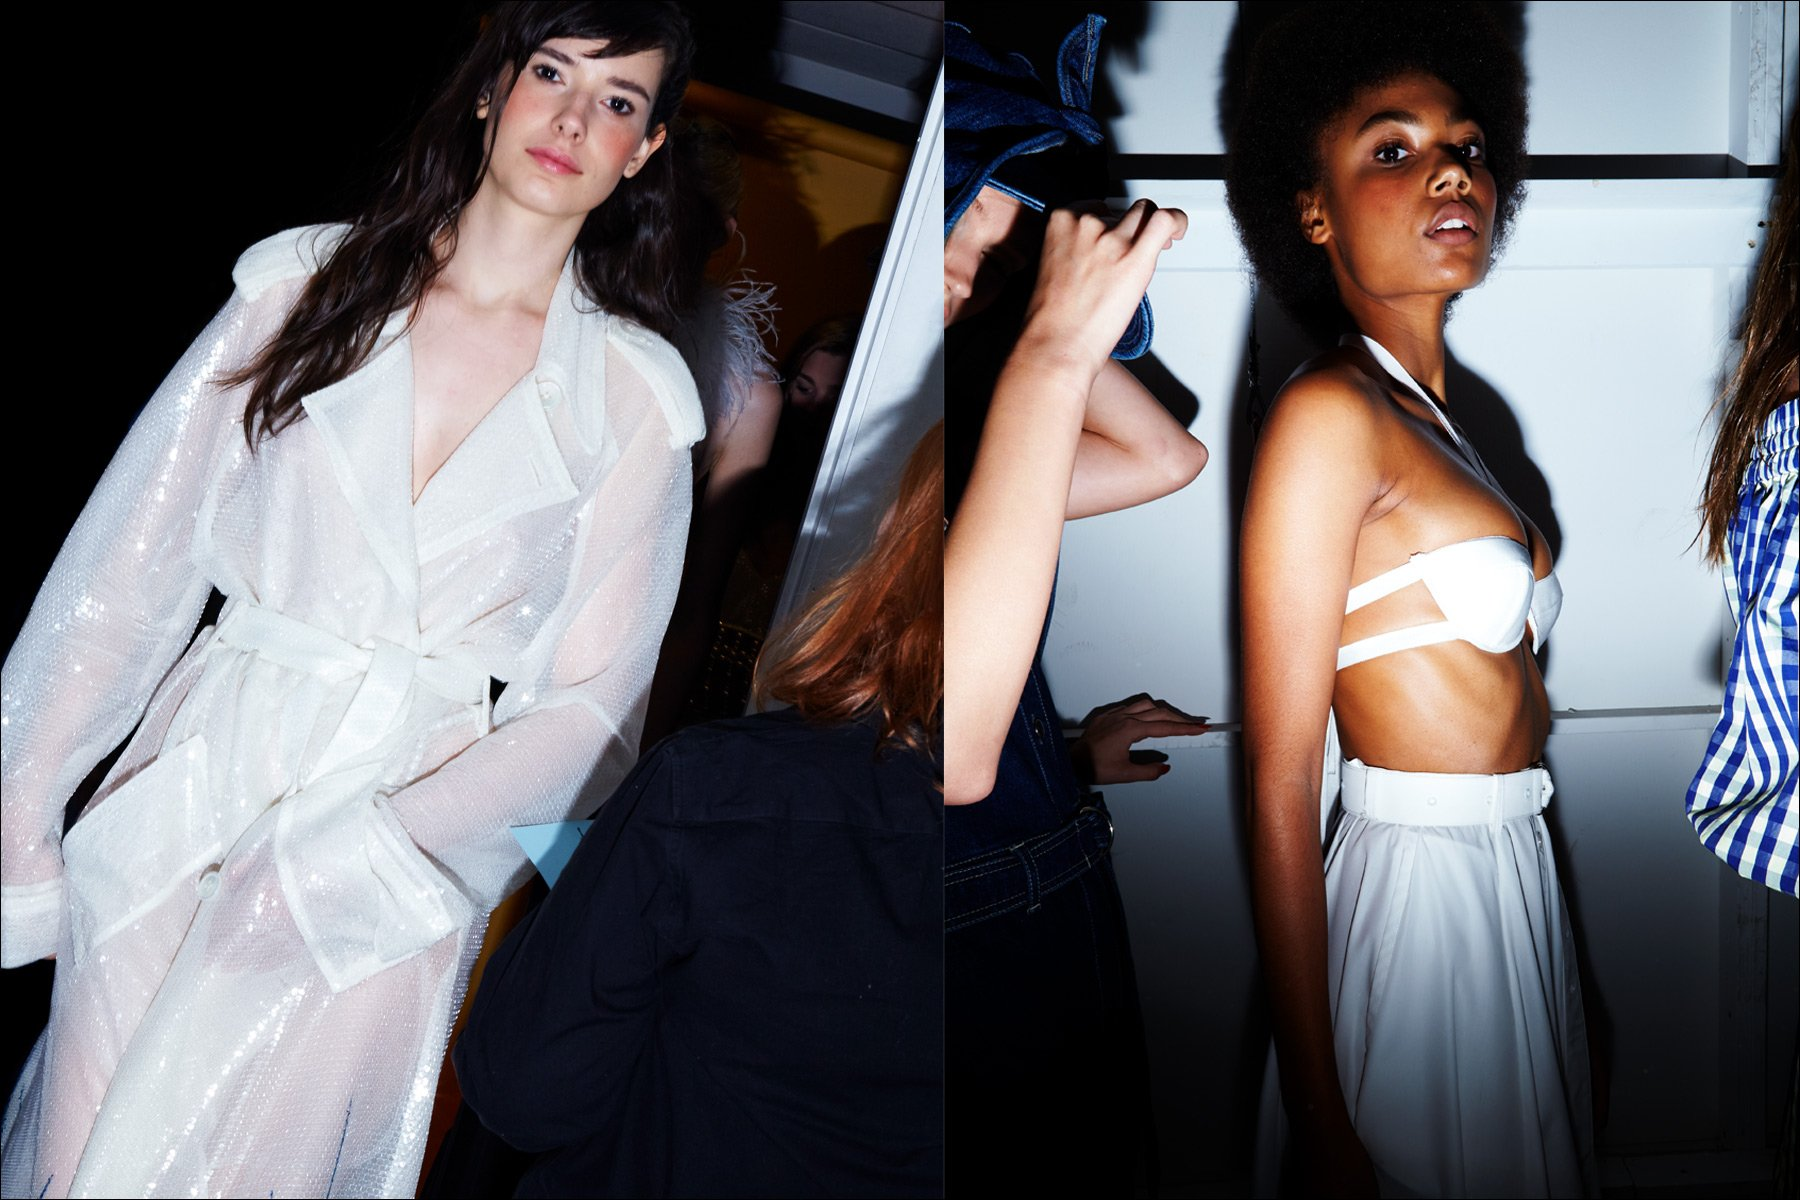 Model Isabella Ridolfi snapped backstage after the Adam Selman S/S18 show. Photography by Alexander Thompson for Ponyboy magazine New York.